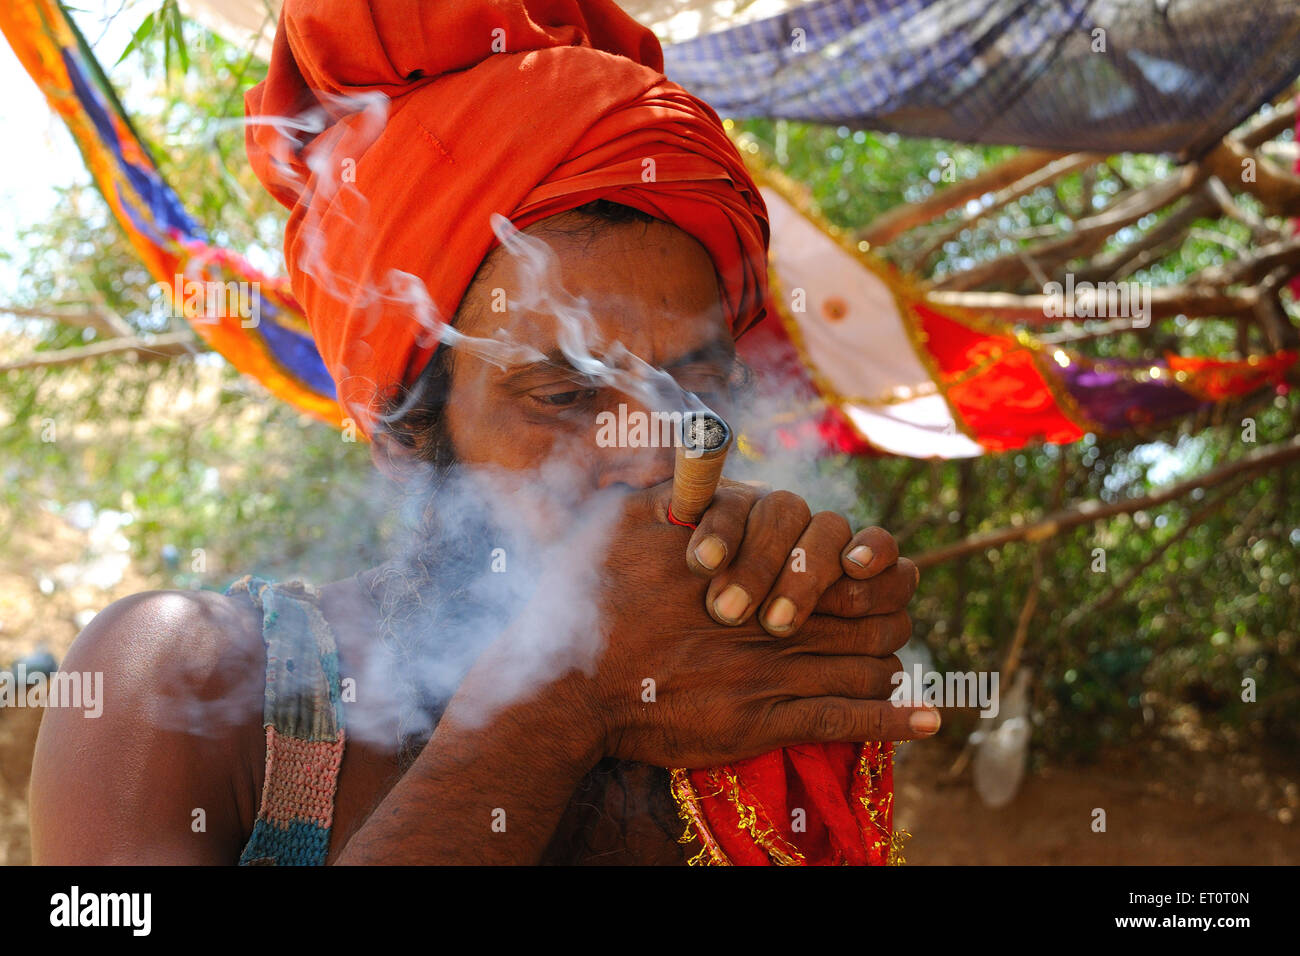 Priest smoking chillum NOMR - Stock Image